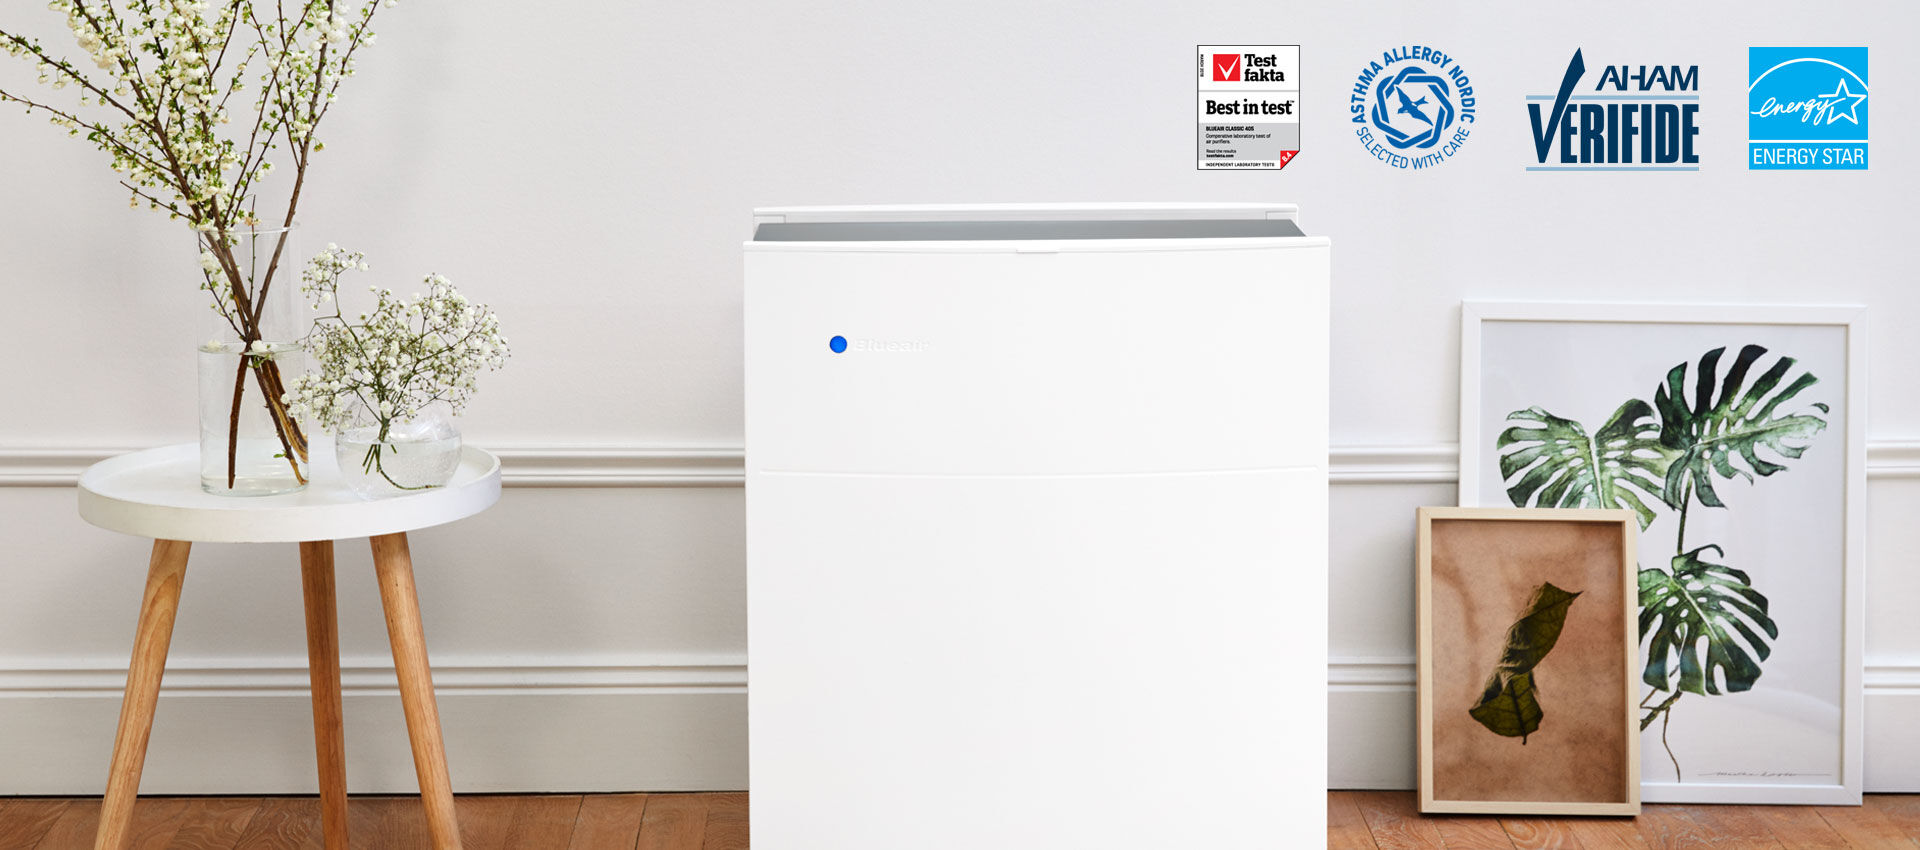 Blueair  Our most awarded air purifier  EU-classic-405-awards-banner